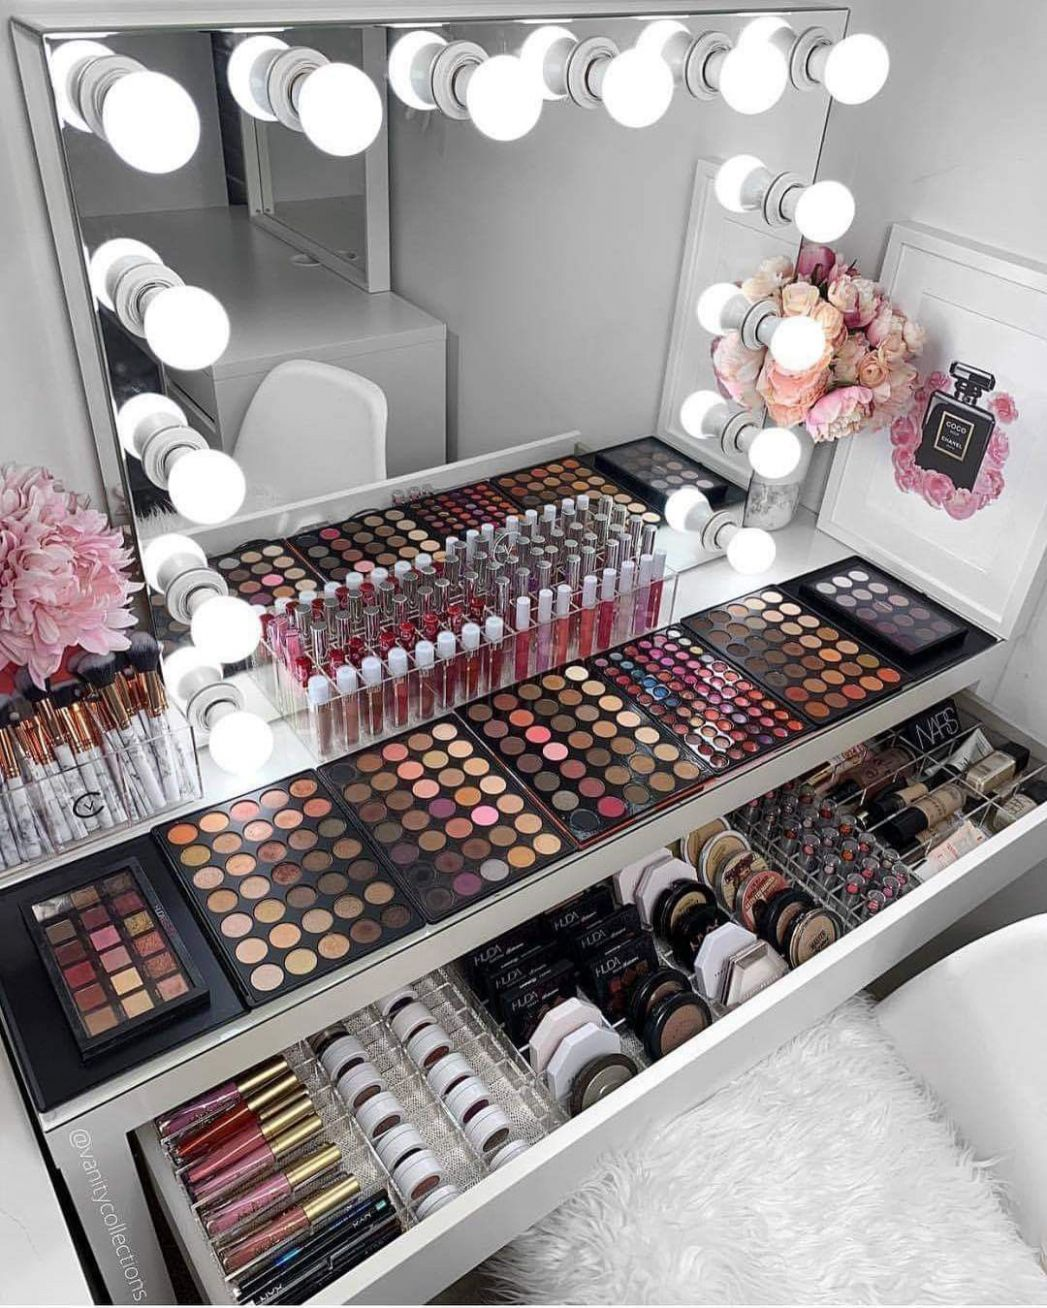 Makeup goals! I love makeup so much and one day i want to have a ..